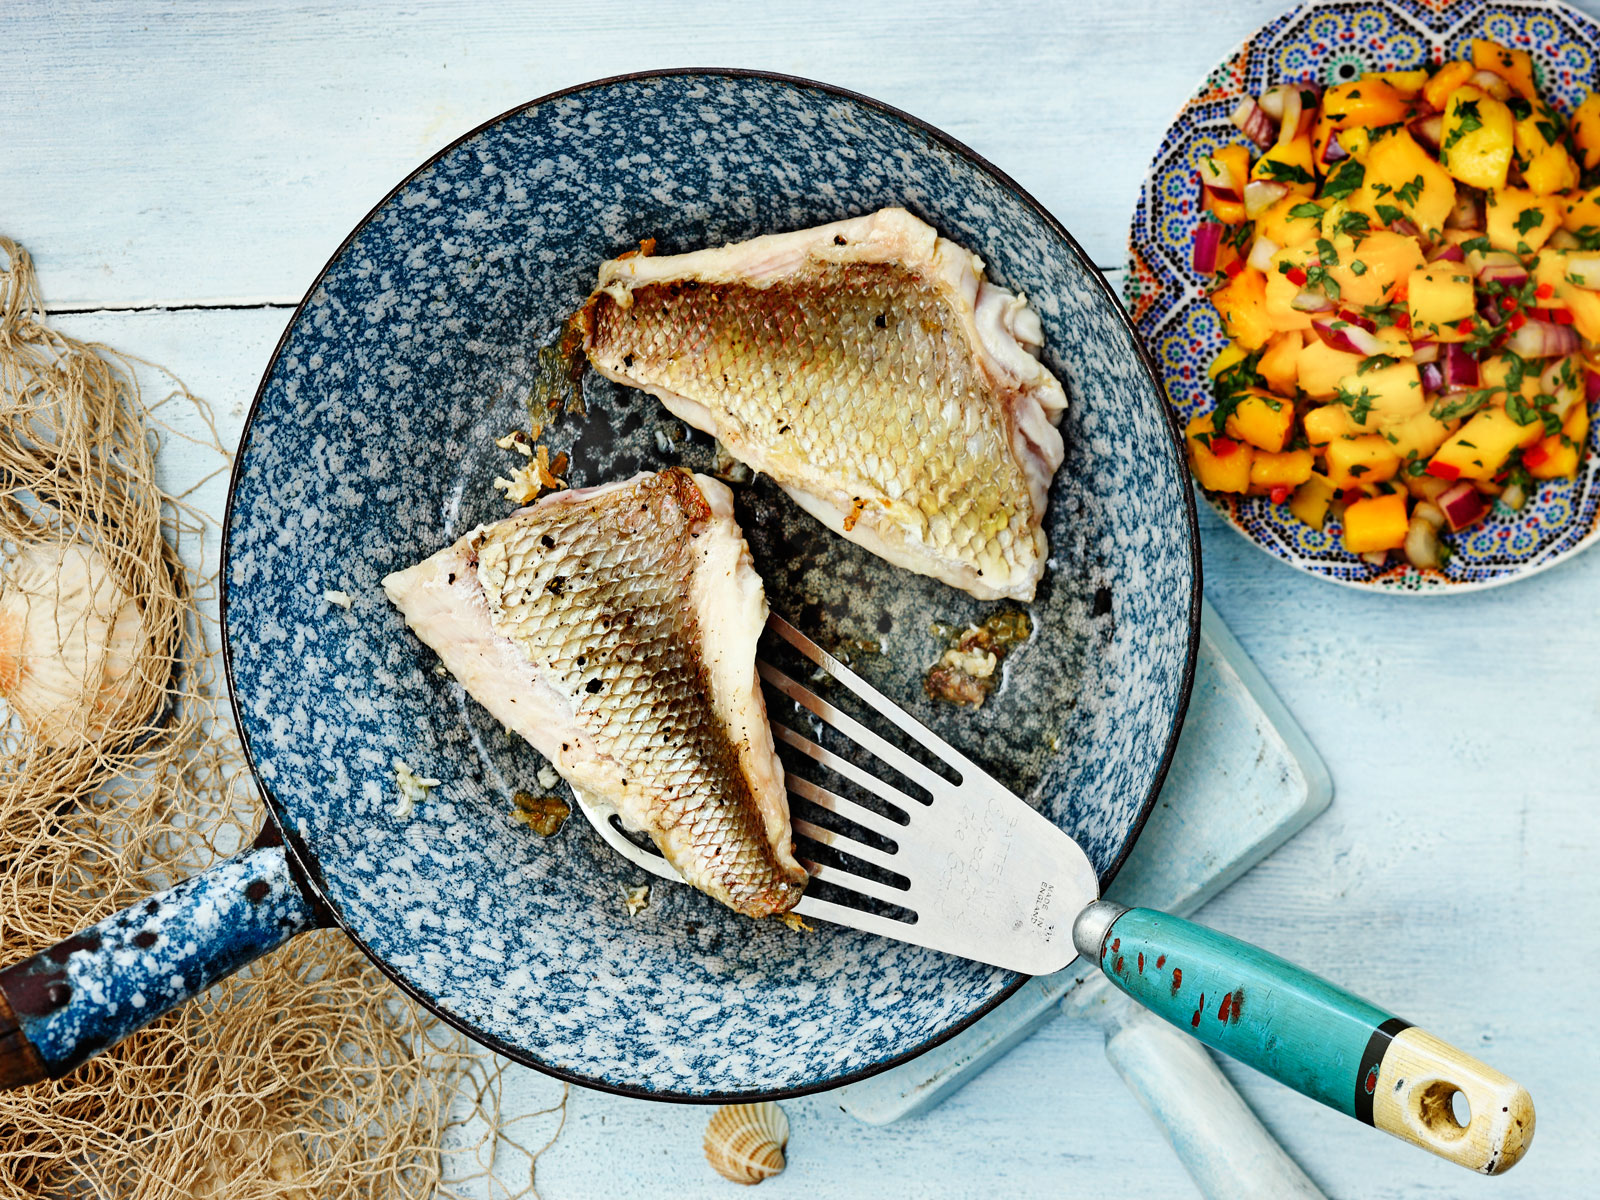 The Easiest Way to Stop Overcooking Fish